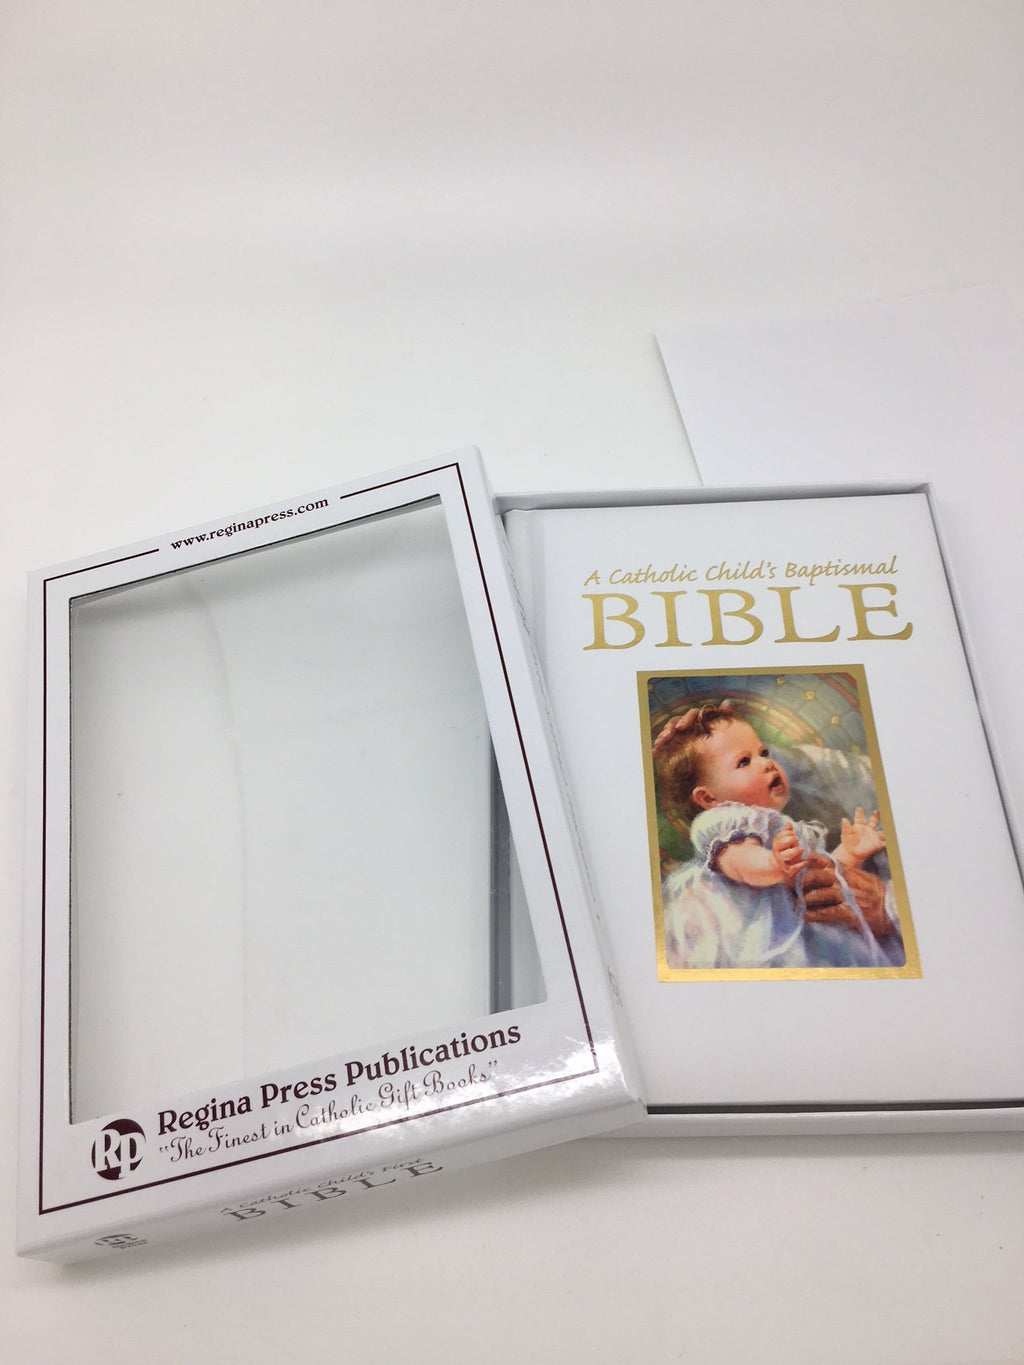 A Catholic Child's Baptismal Bible - Unique Catholic Gifts